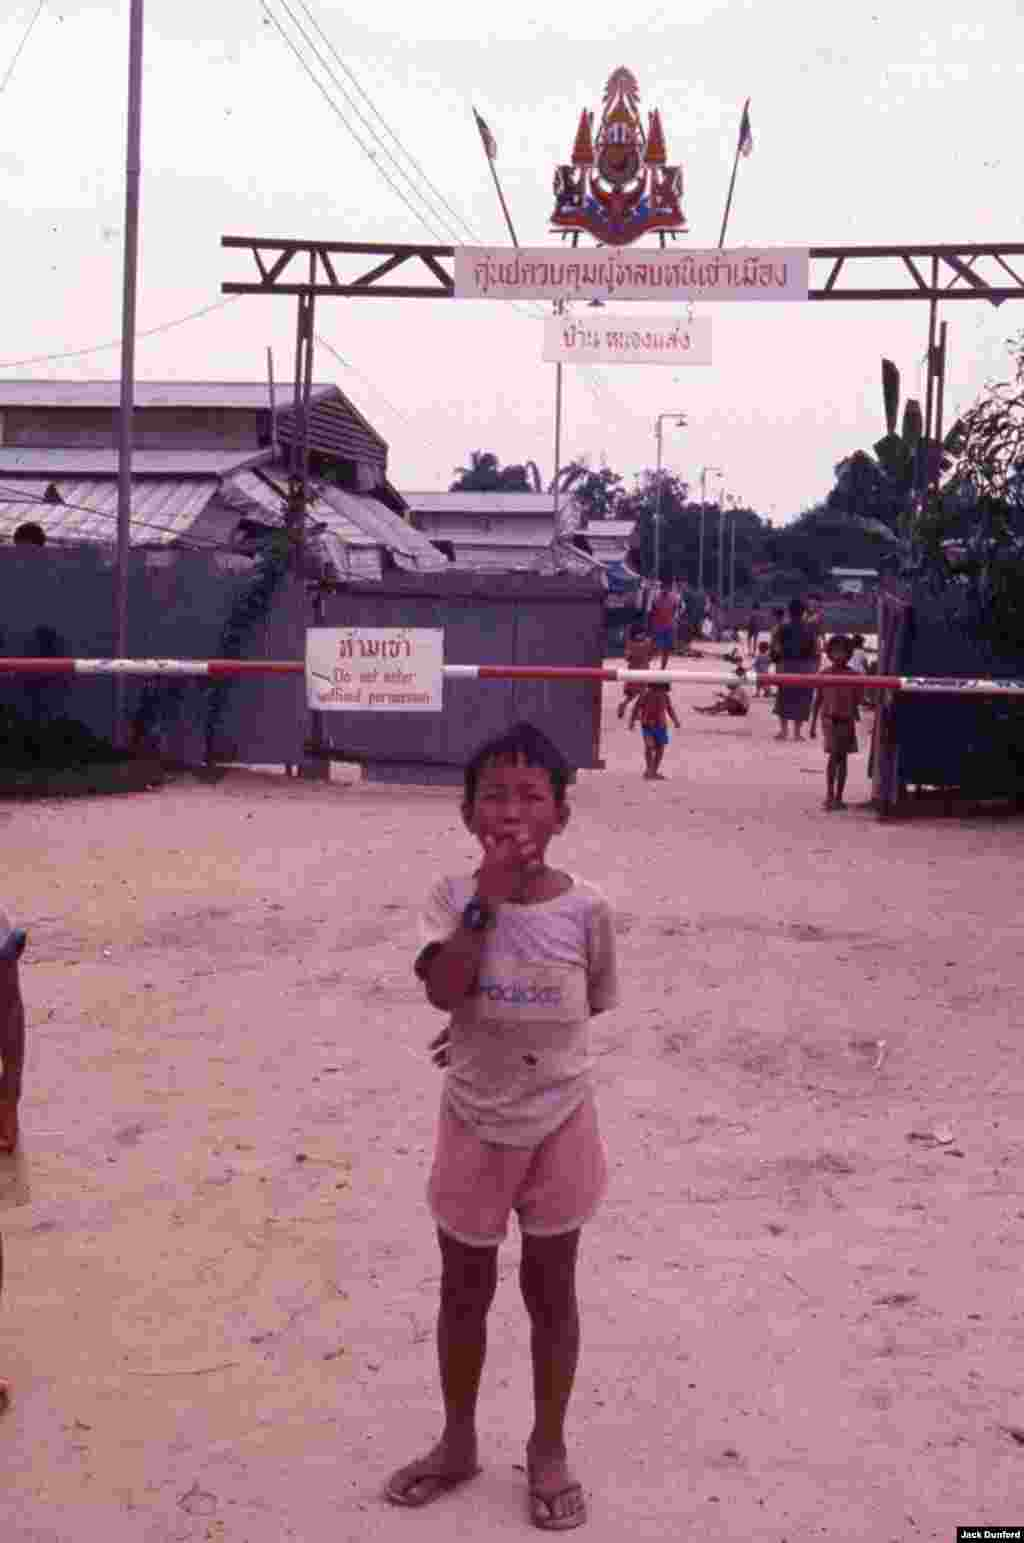 Children at Nong Sen, July 1988. (Jack Dunford)